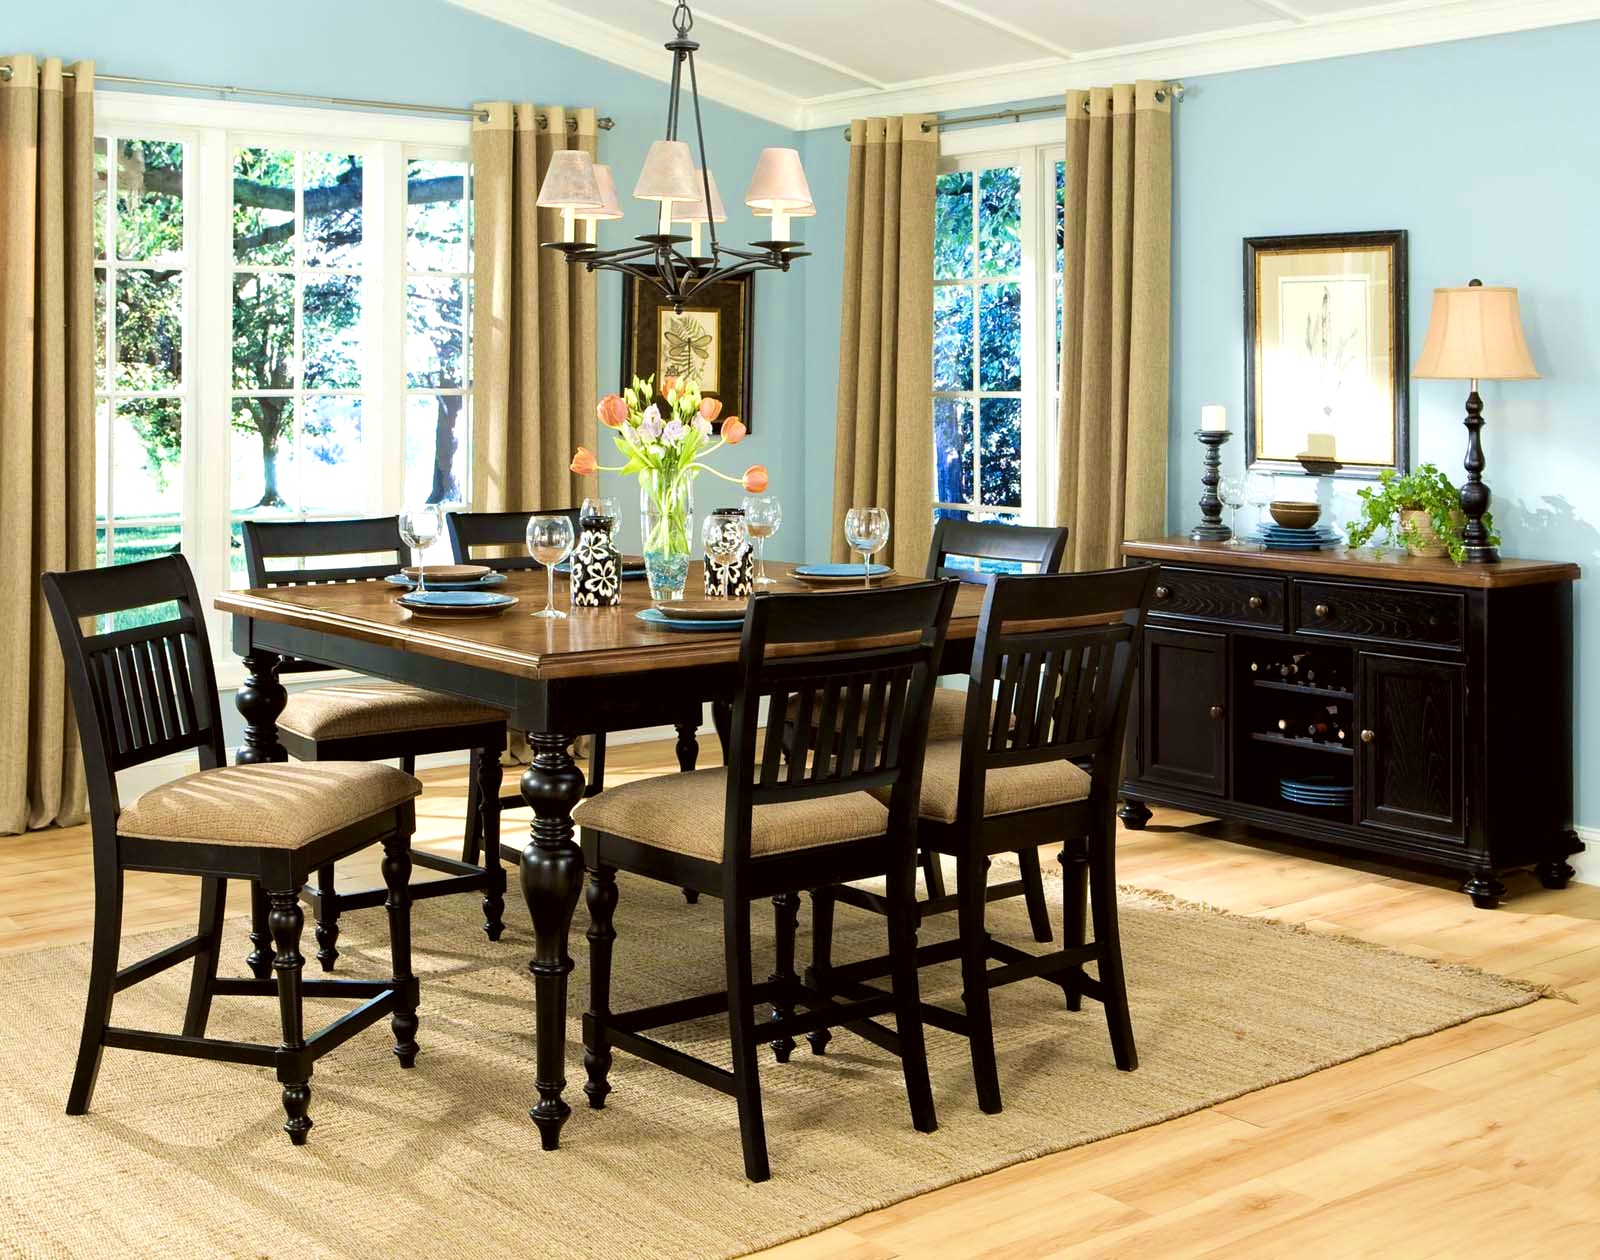 PERFECT STYLES FOR YOUR DINING ROOM VARIOUS DESIGN IDEAS